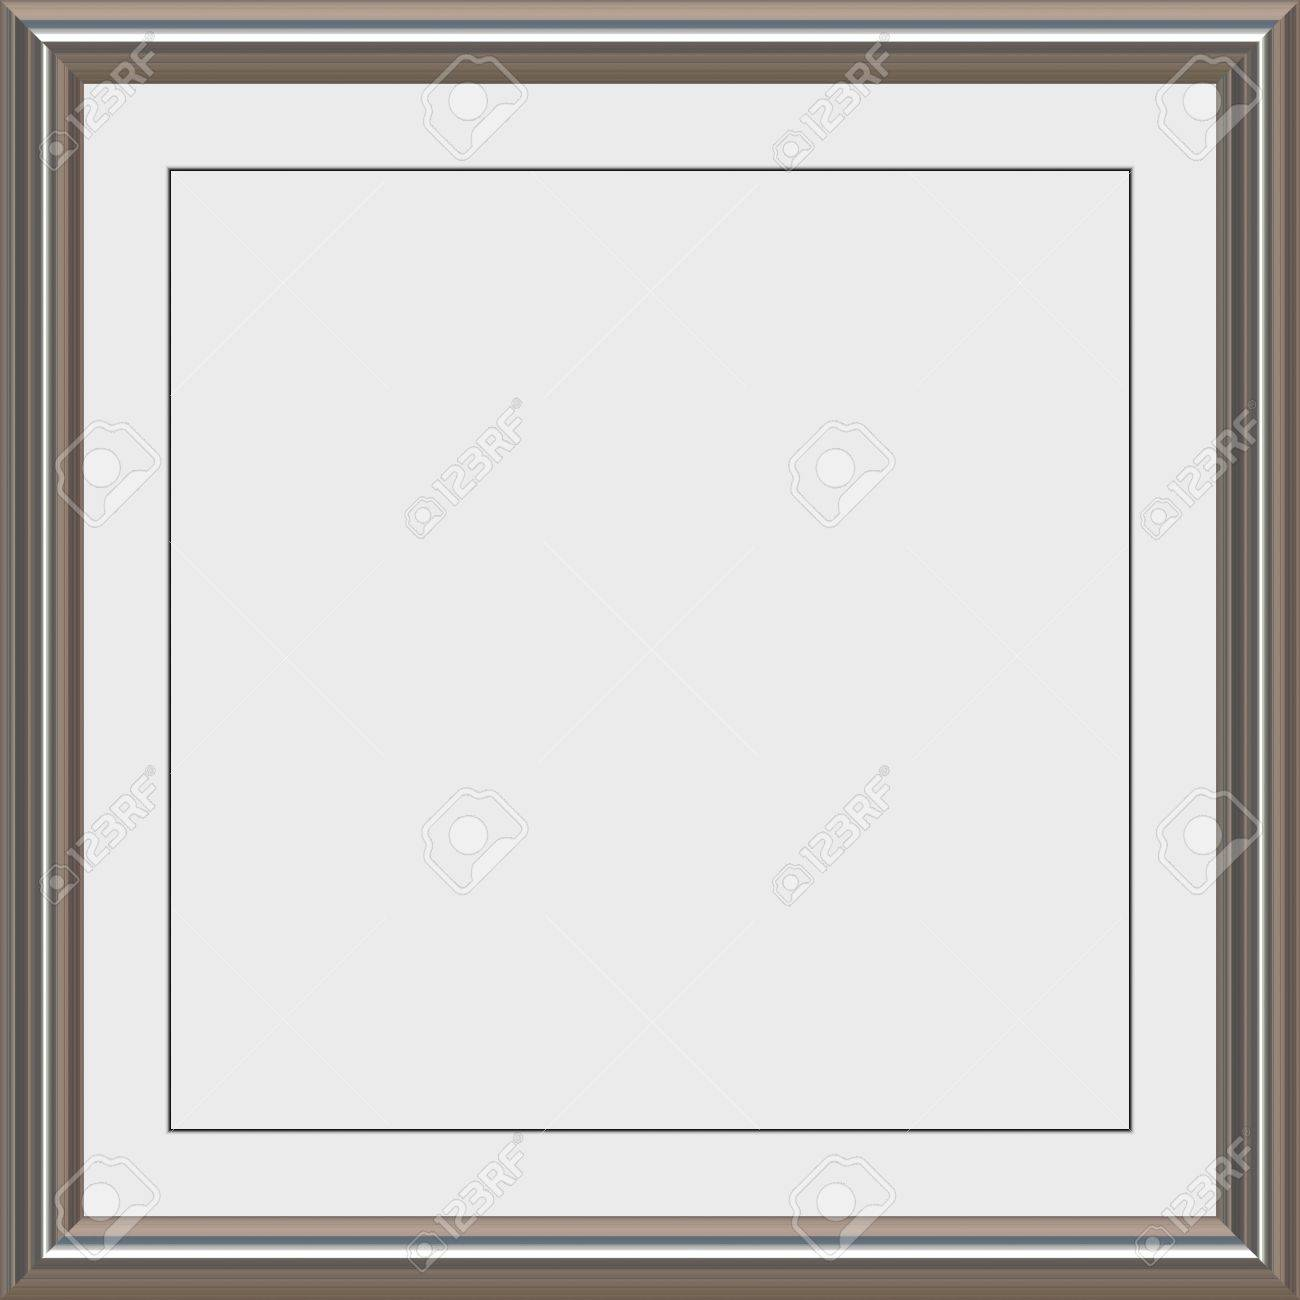 shiny metal frame with white matte for certificates awards or